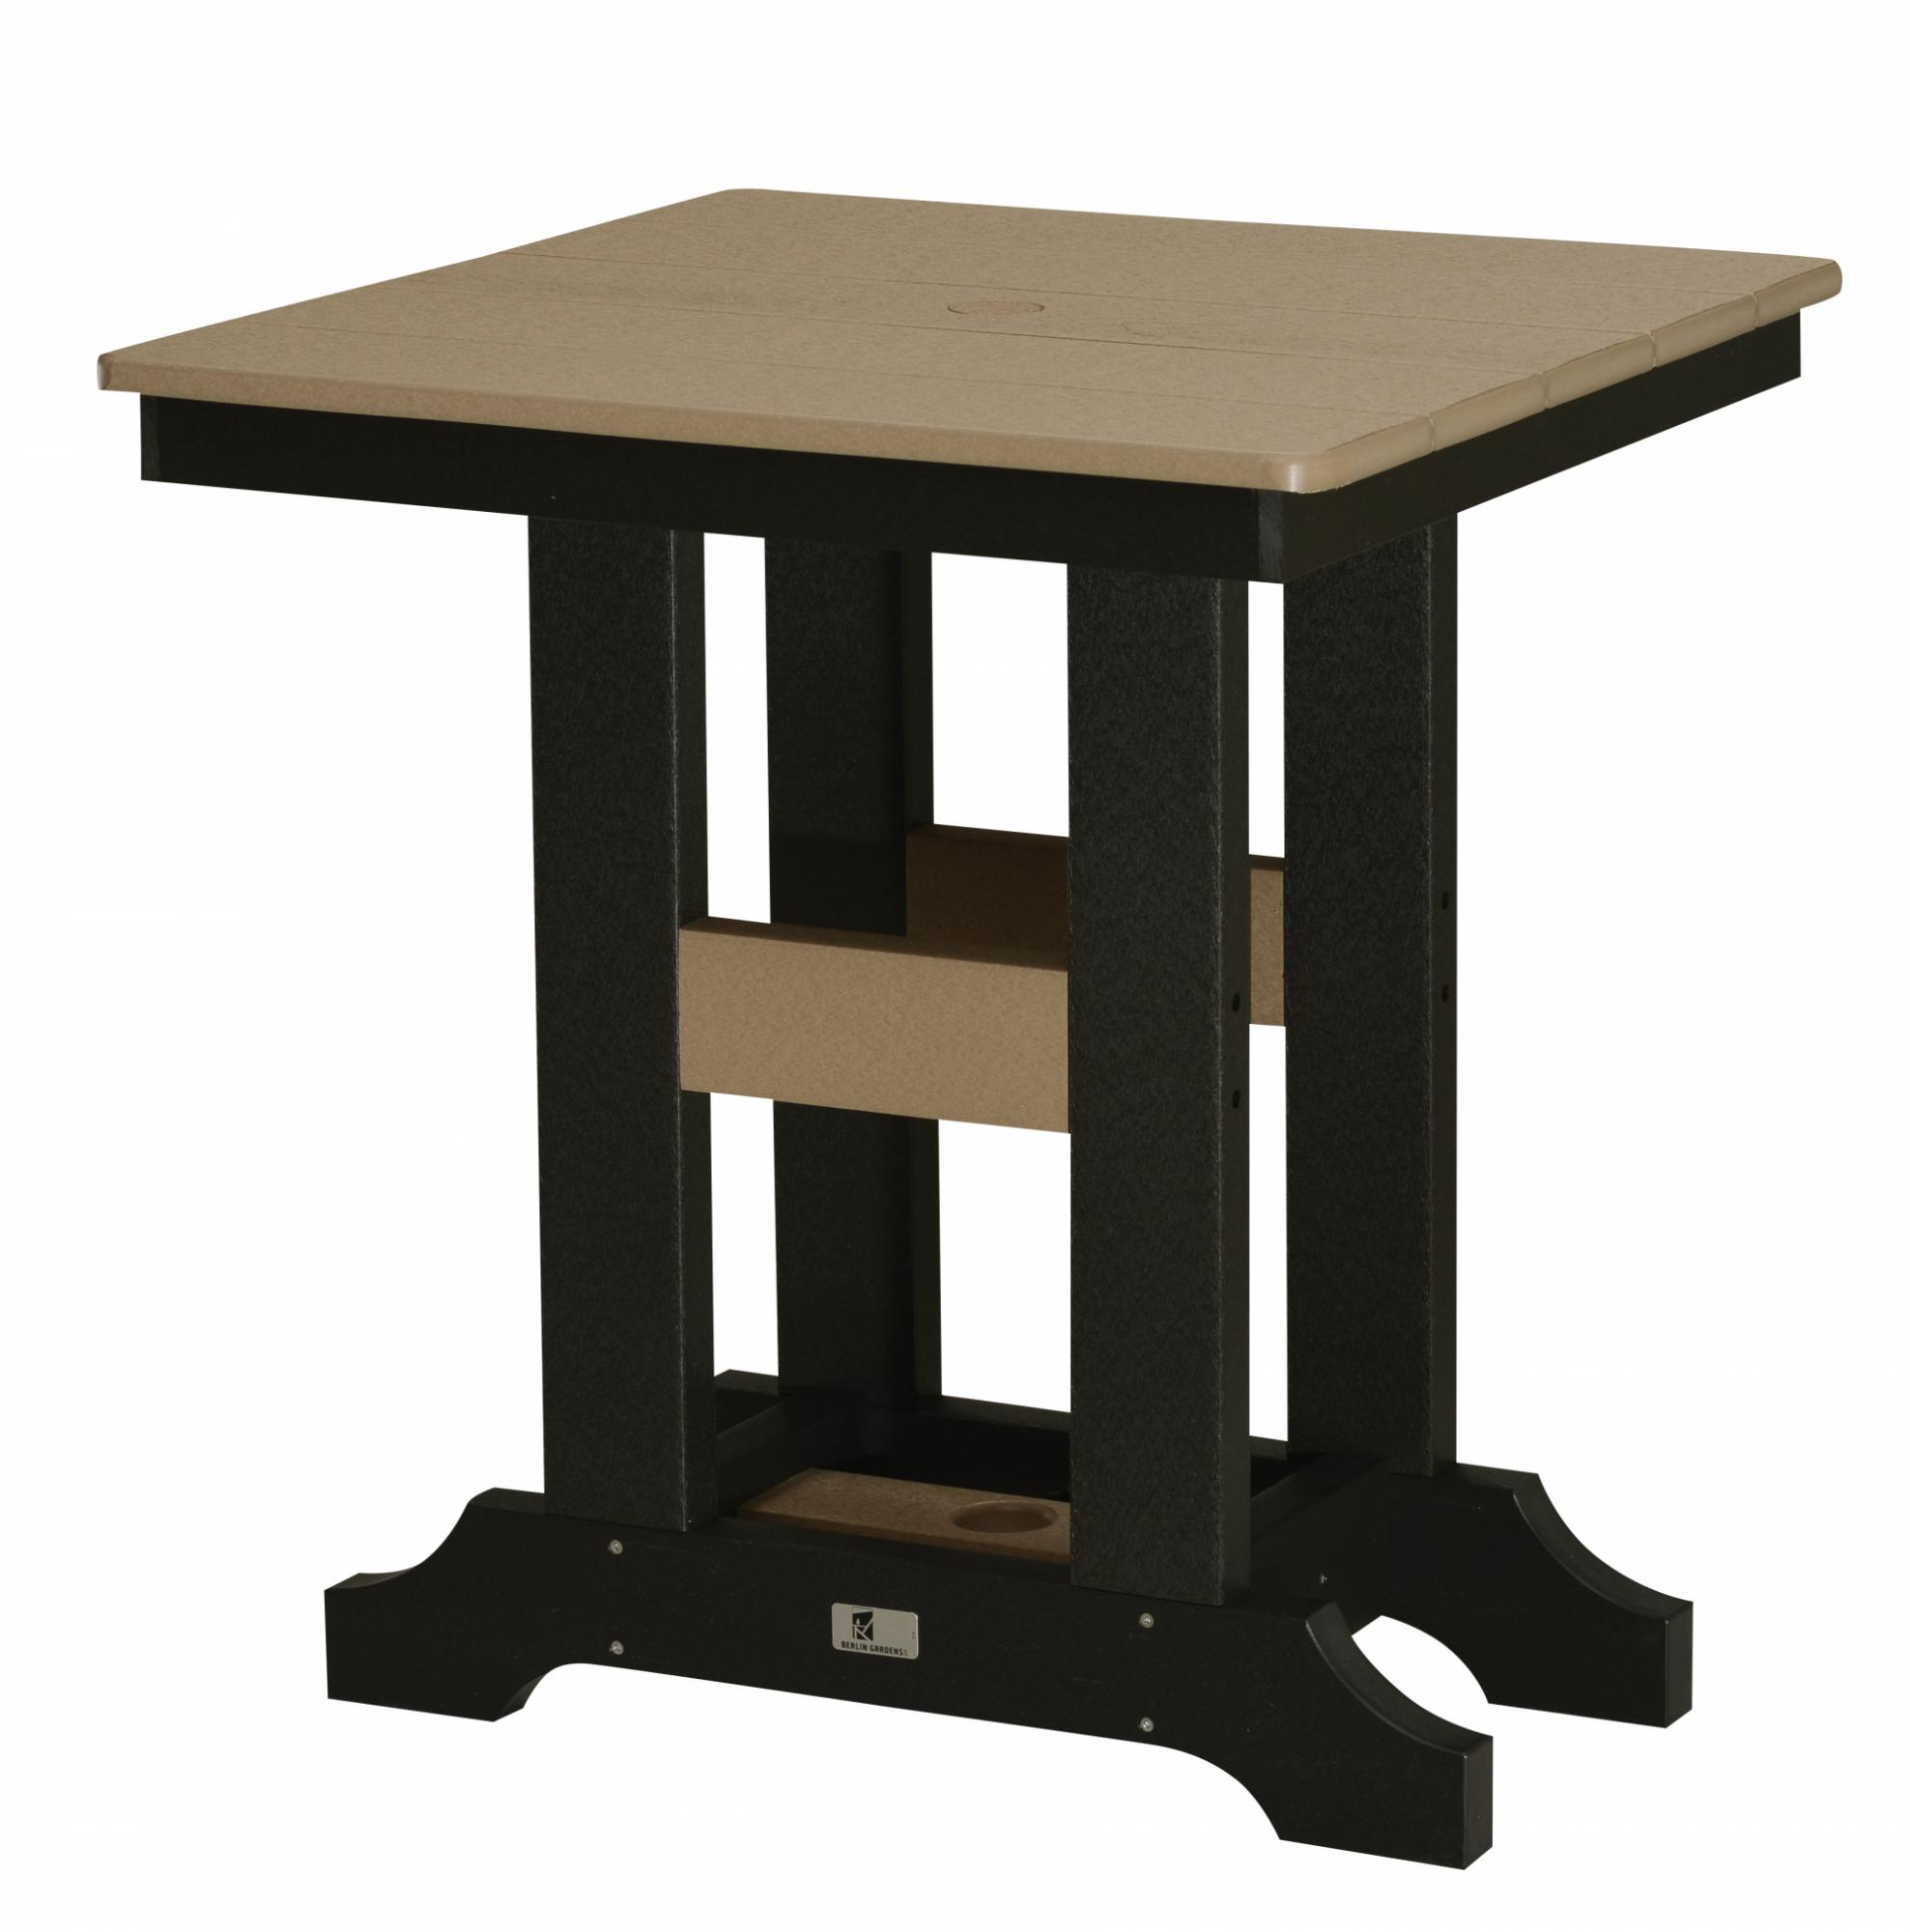 28 Inch Square Table